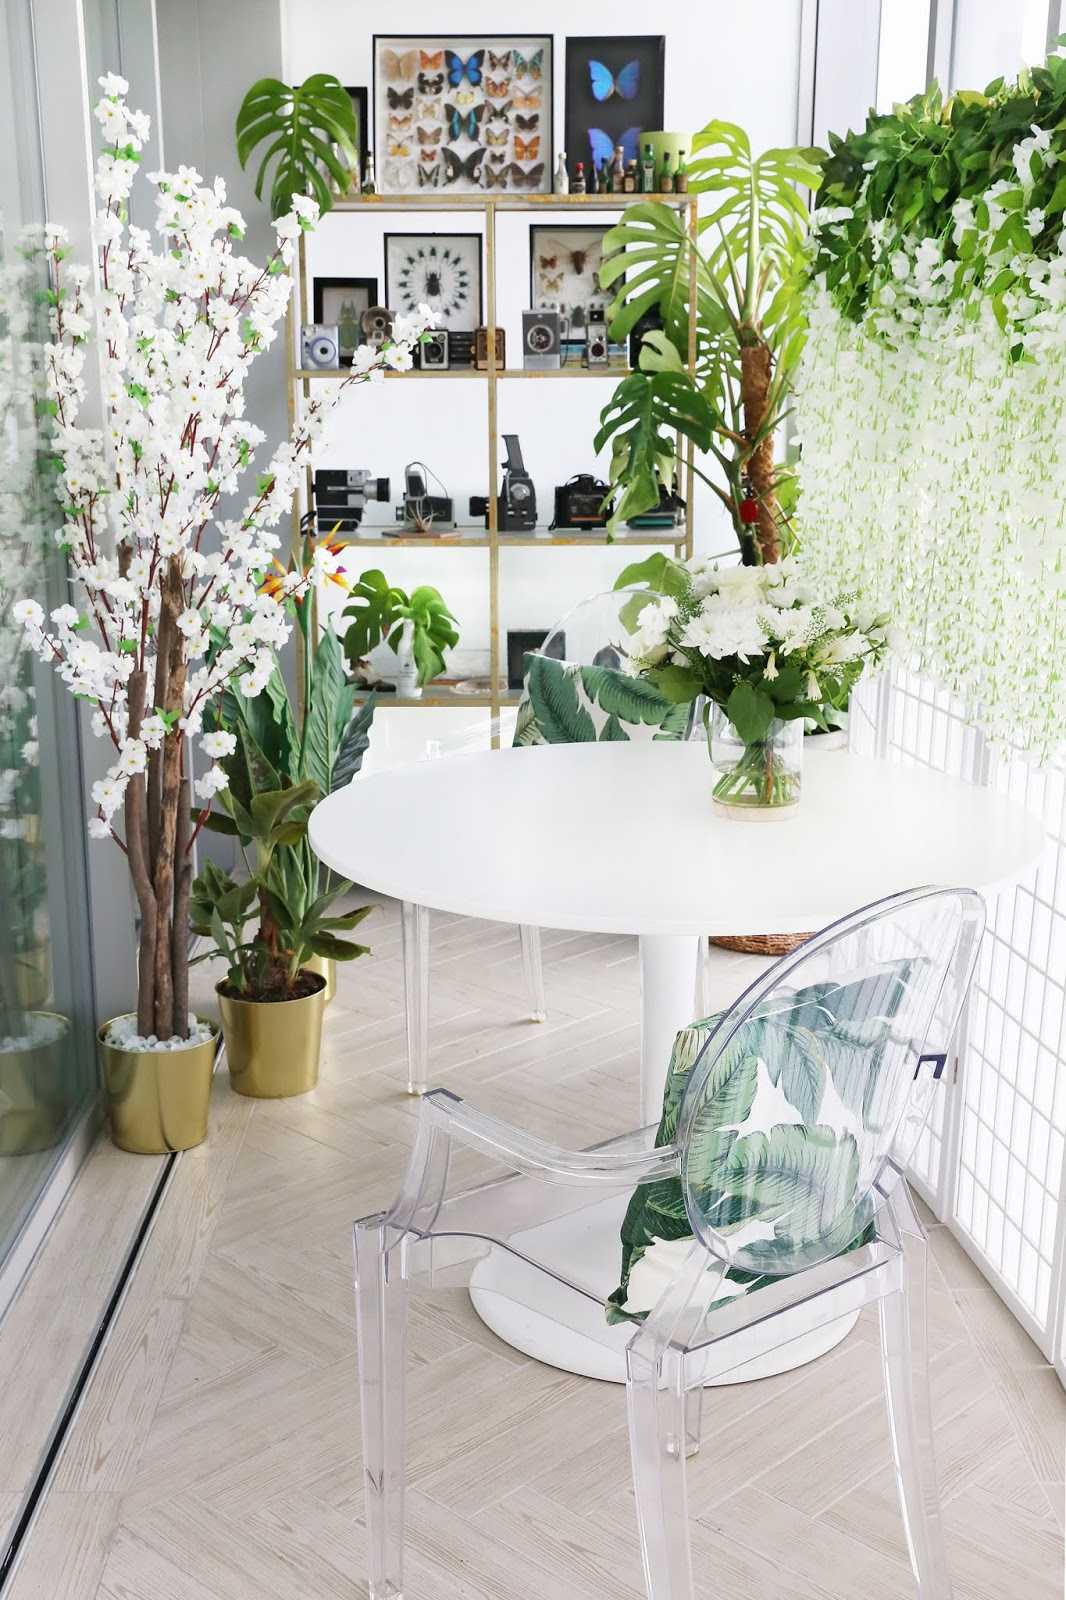 Bringing the outdoors in - Part 3 of my London Home Tour, the Winter Garden (conservatory) by Posh, Broke, & Bored